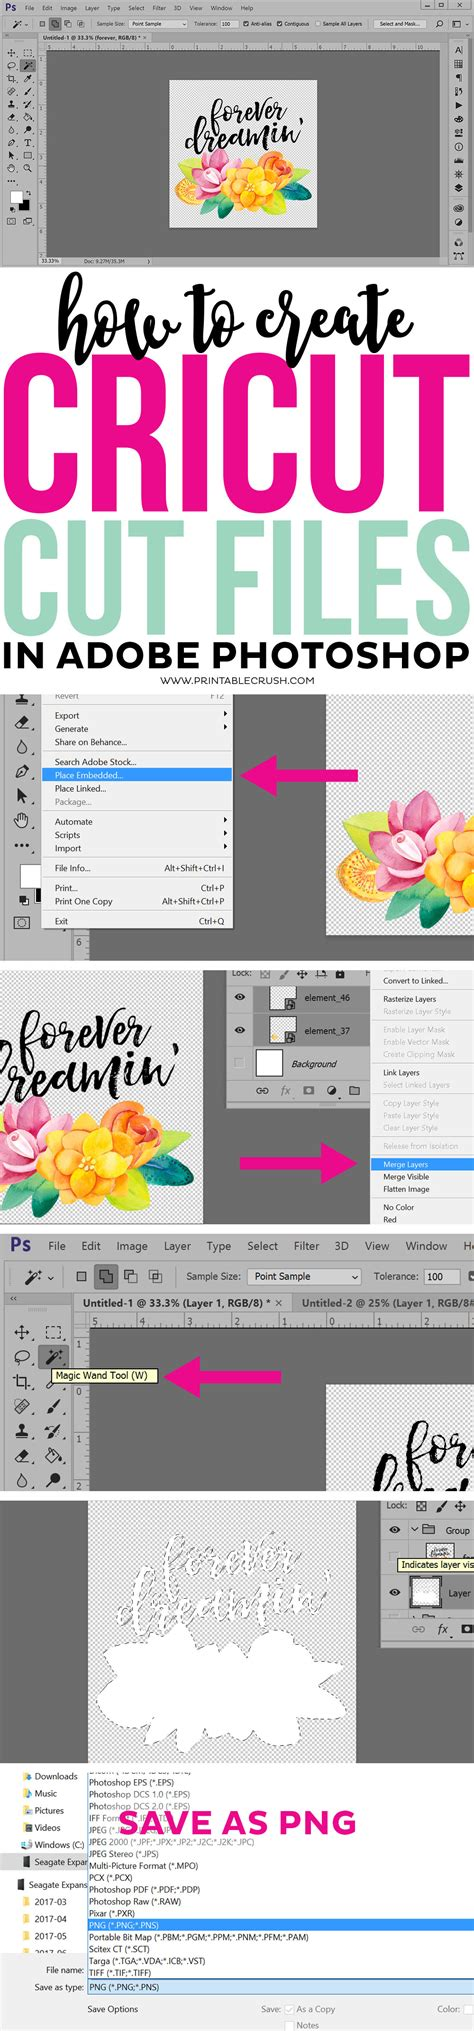 make your own file how to create cricut cut files in adobe photoshop